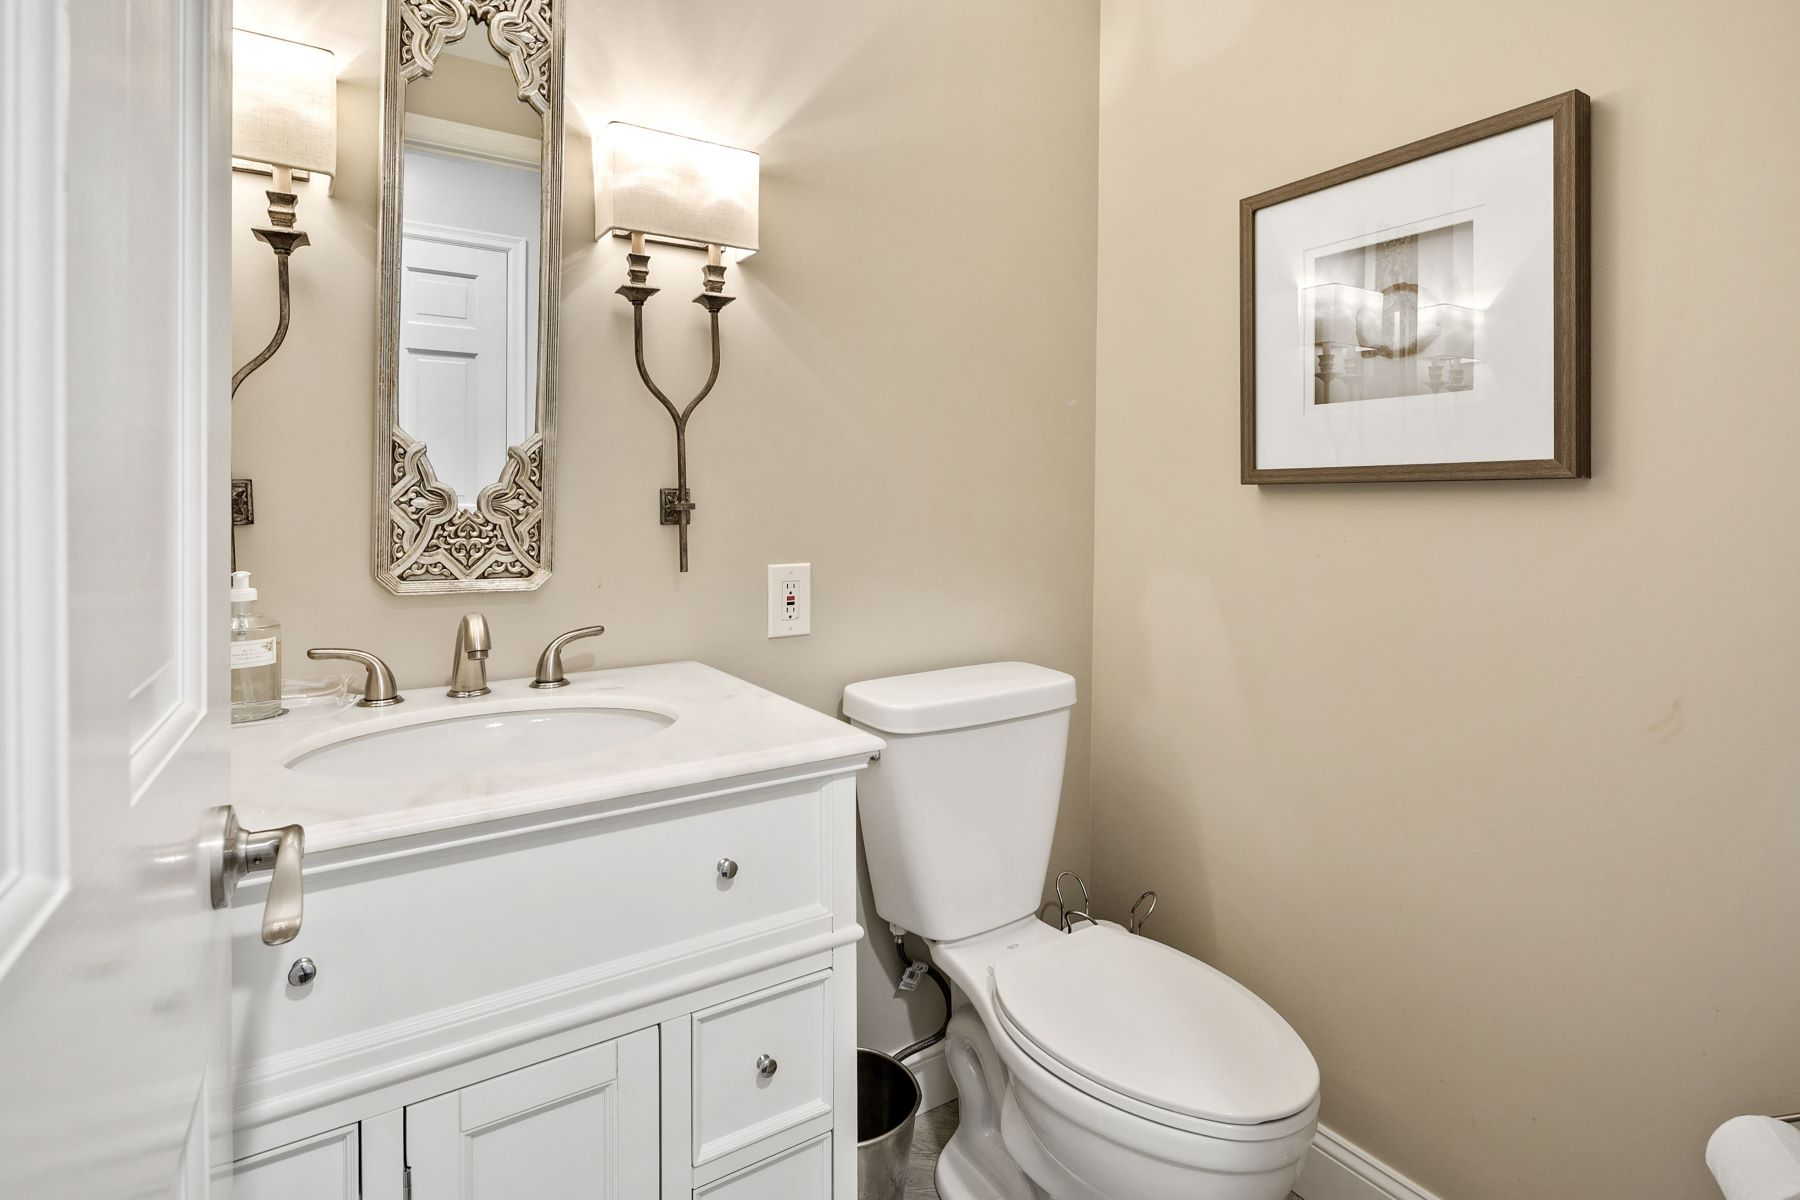 Additional photo for property listing at Resort Quality Living 21 Beacon Hill Lane Creve Coeur, Missouri 63141 United States